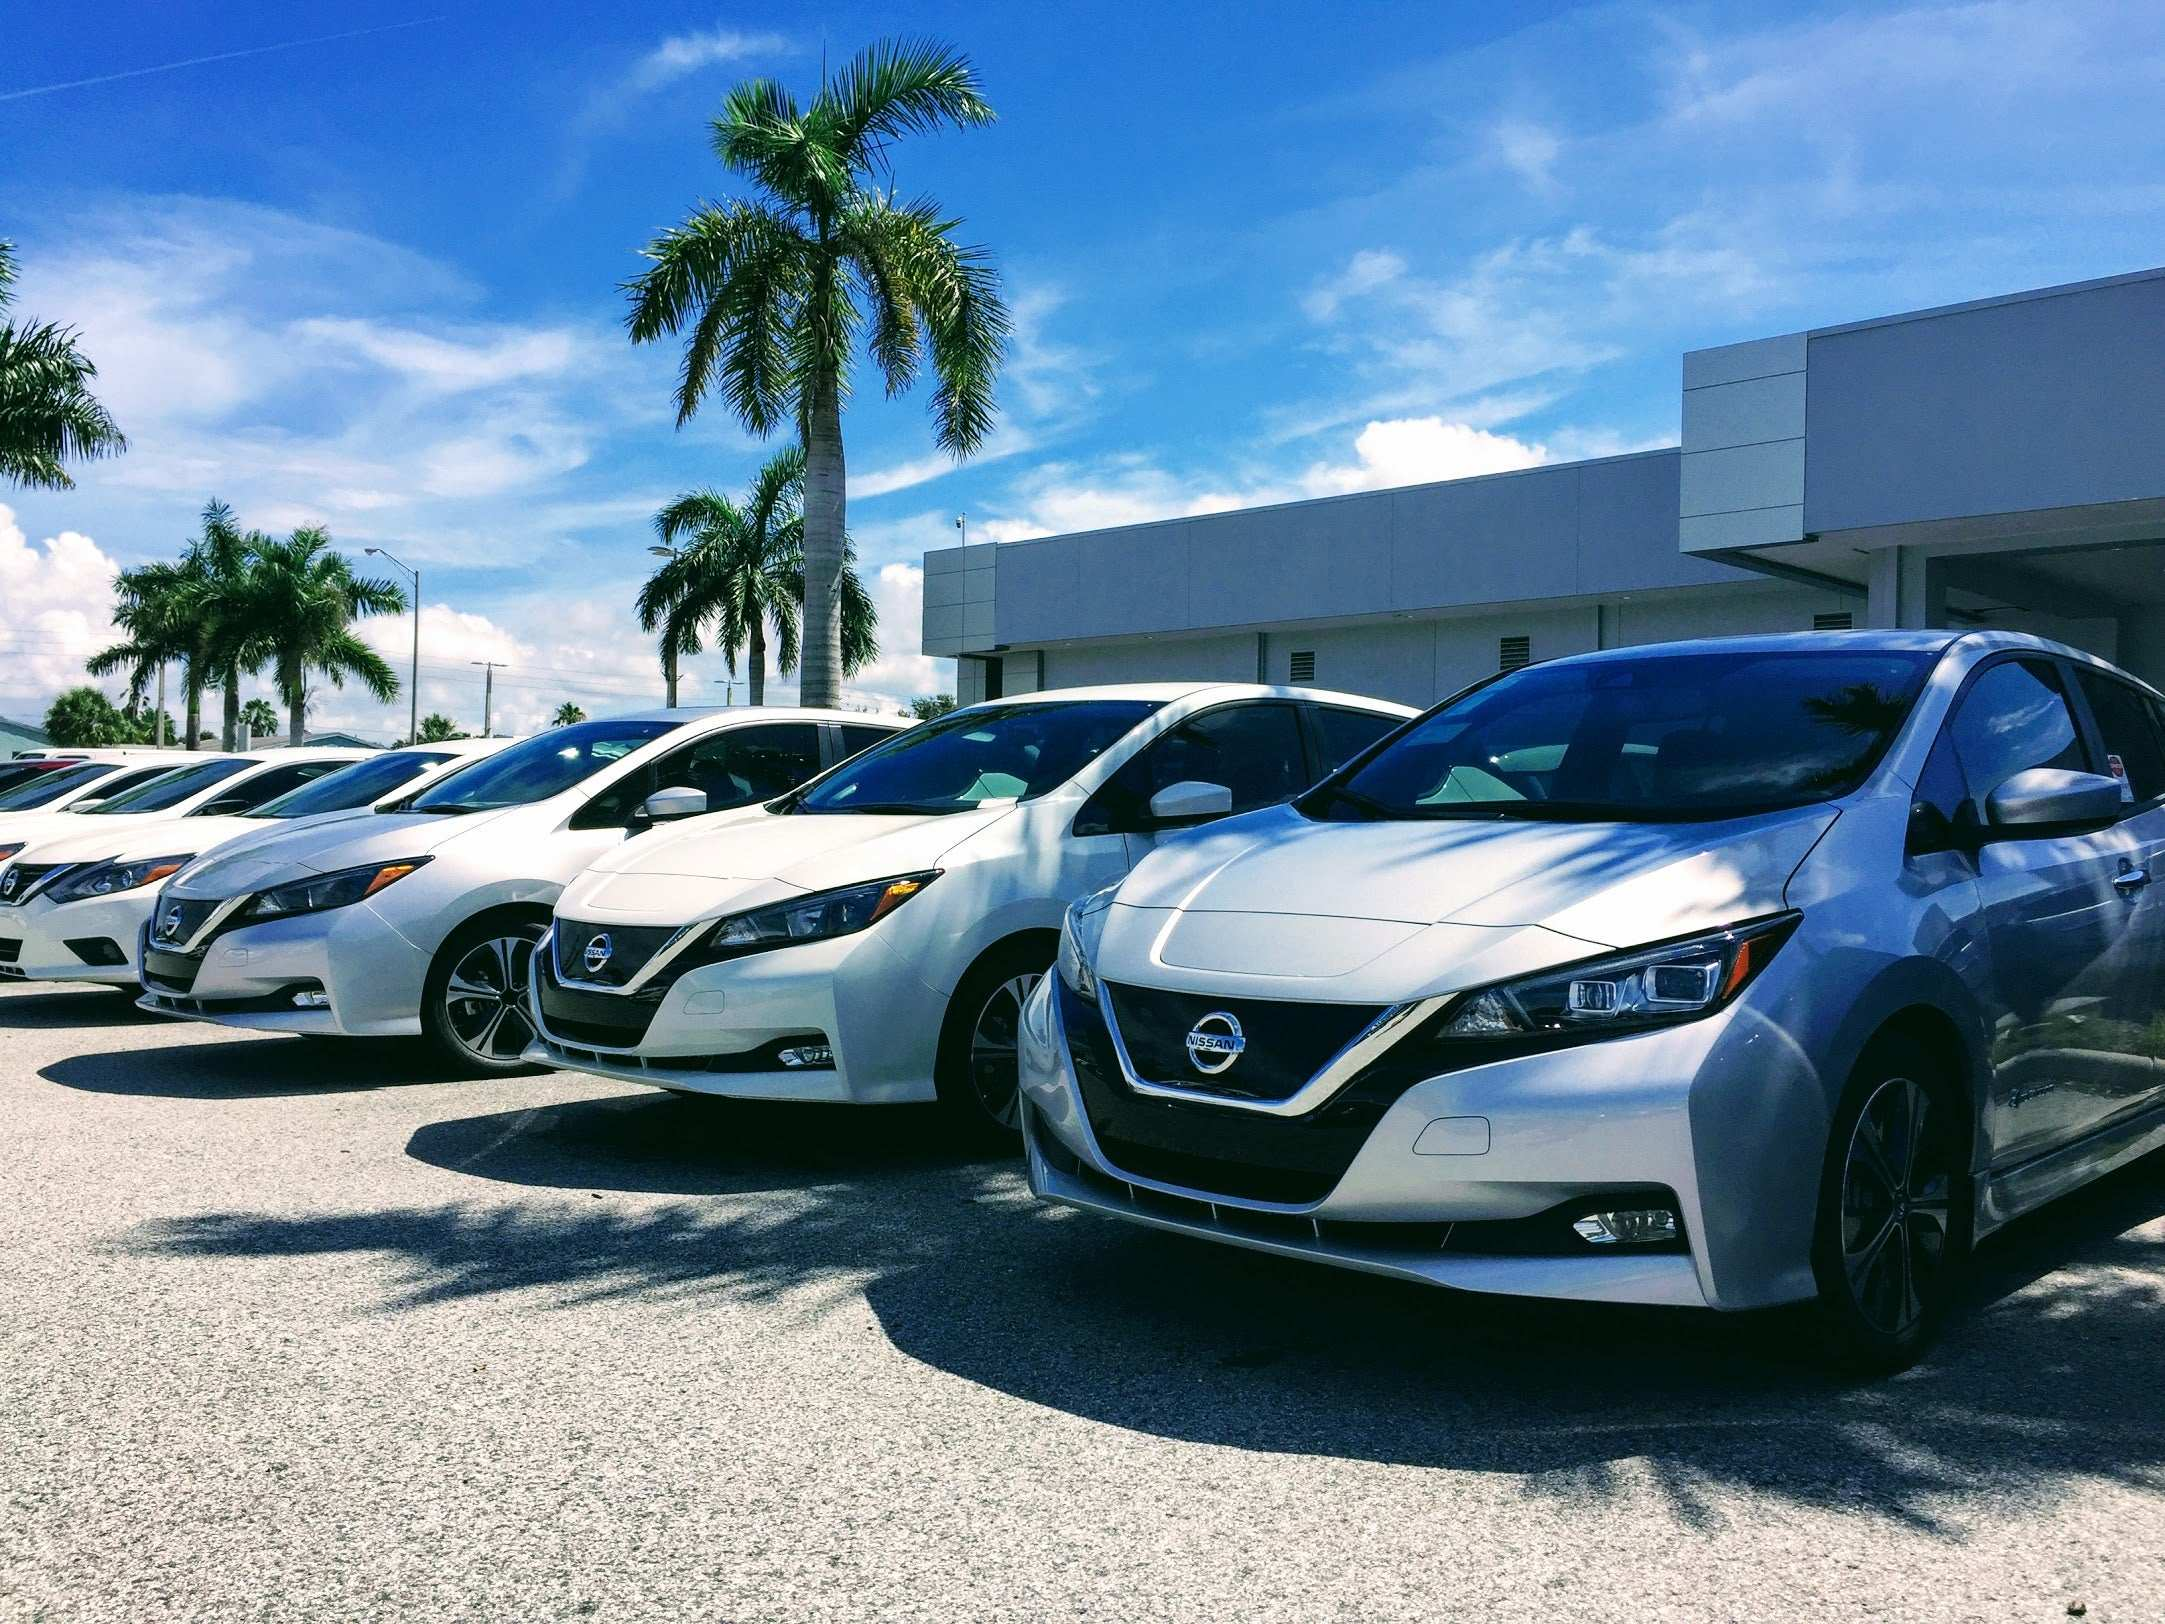 63 New 2020 Nissan Leaf Battery Specs